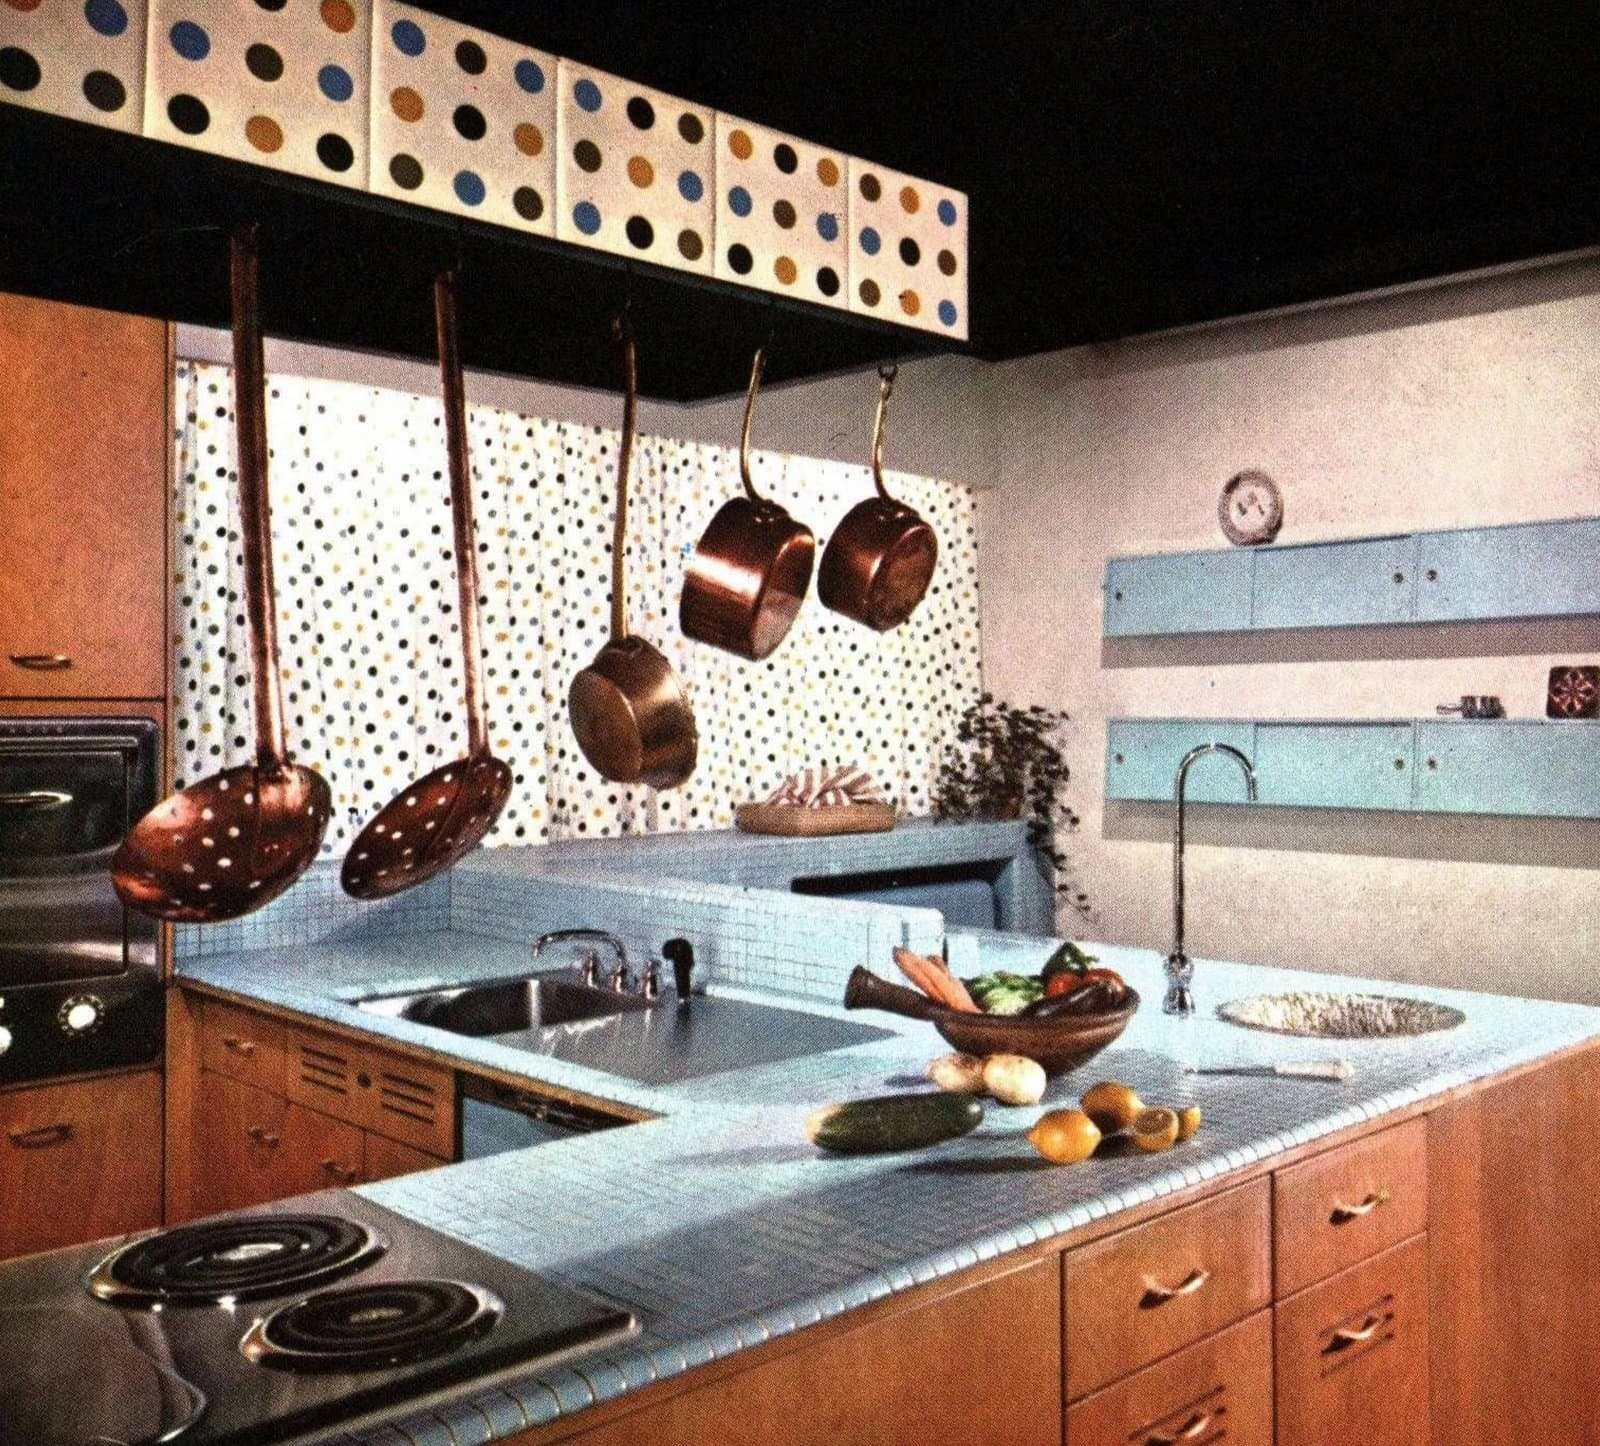 Small sky blue mosiac tile kitchen countertops from the 1960s